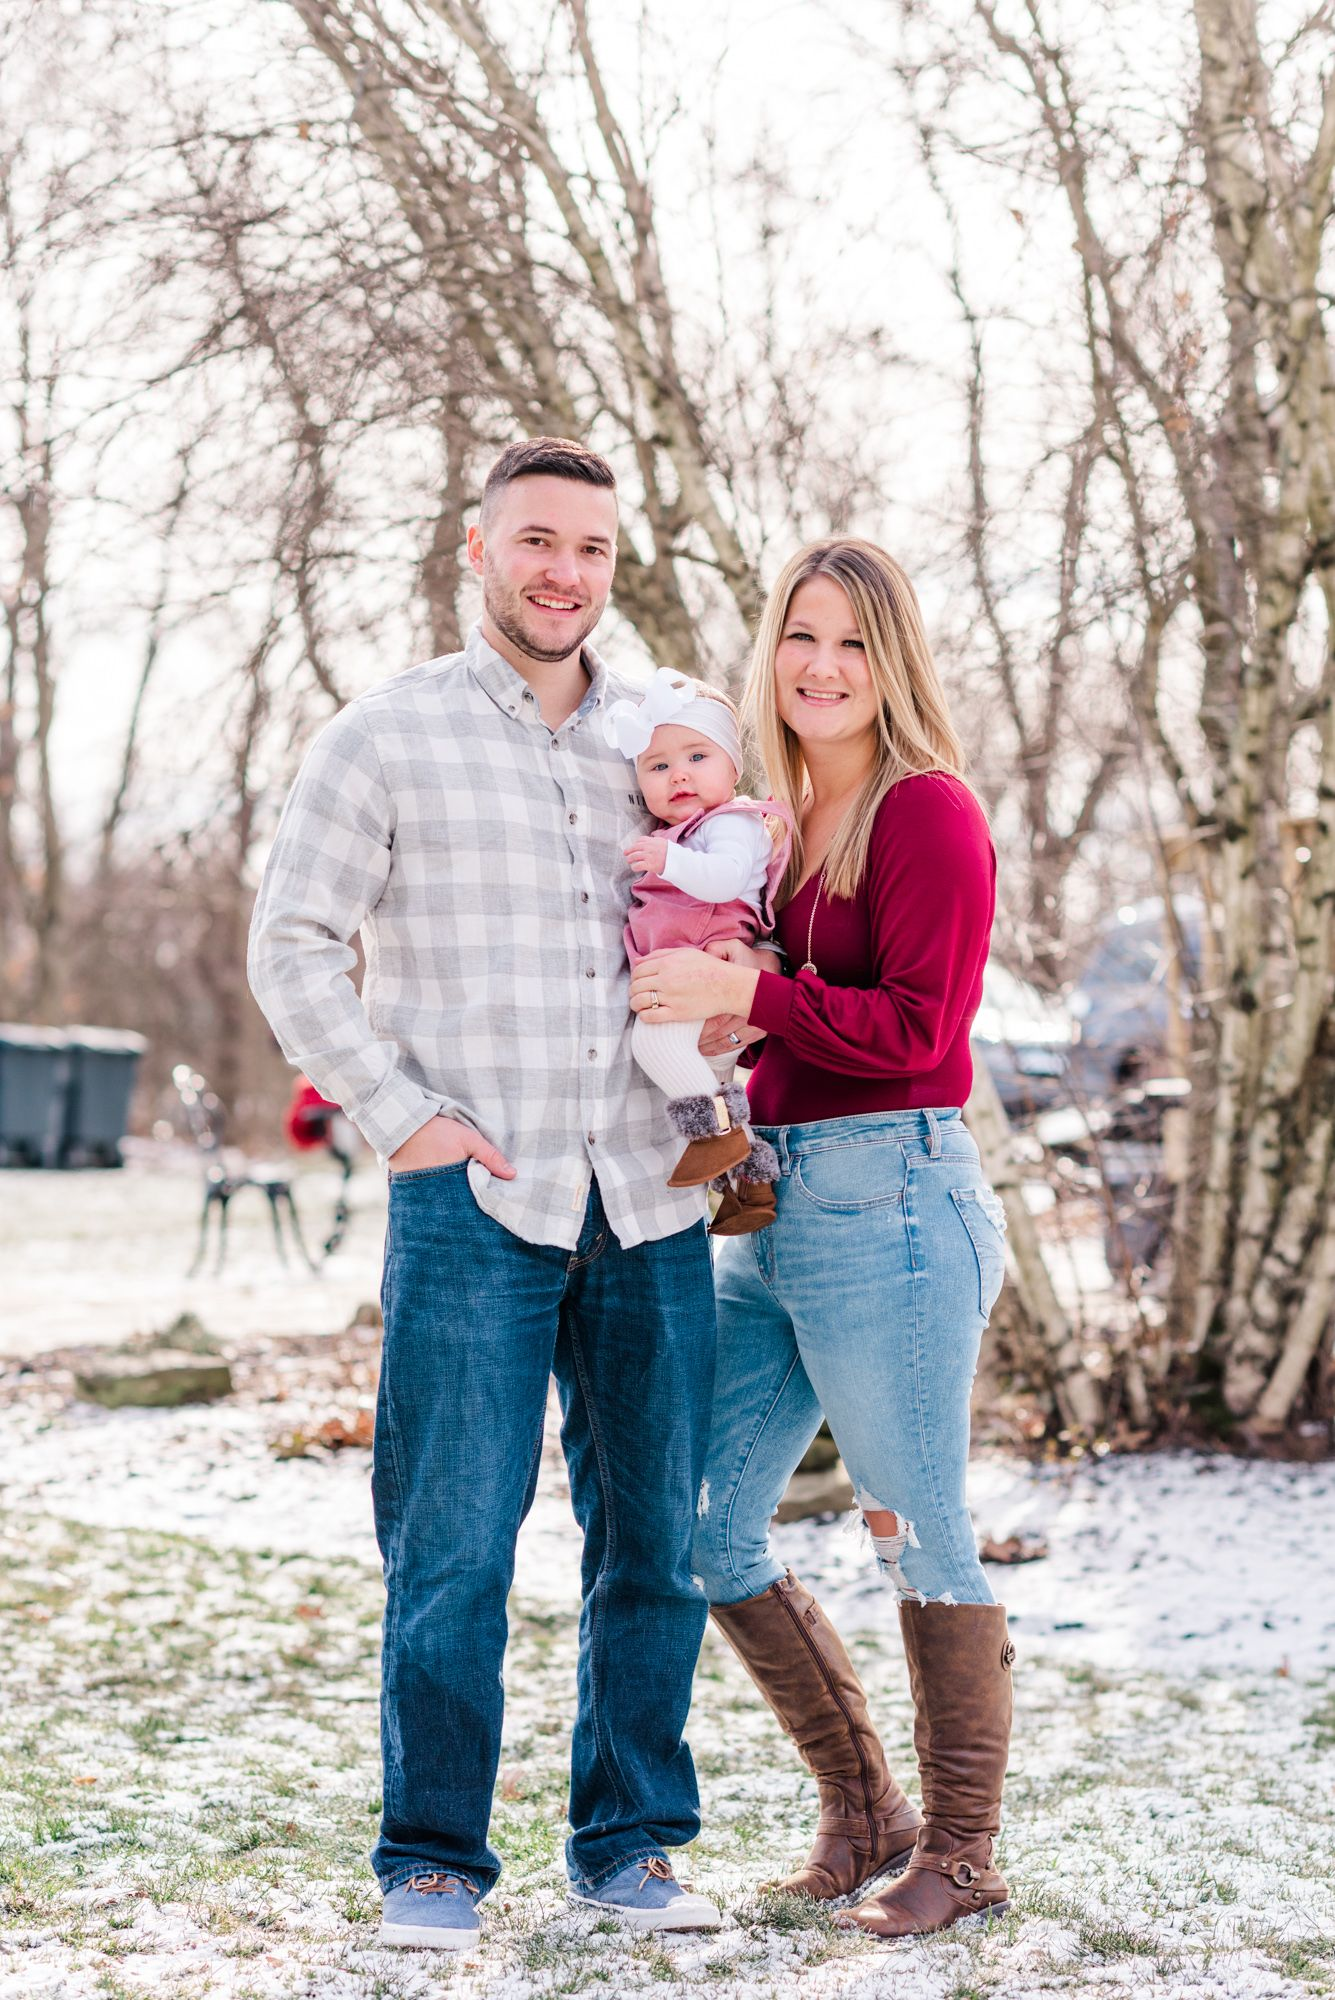 Lifestyle family photoshoot in the winter in Gibsonia, Pennsylvania